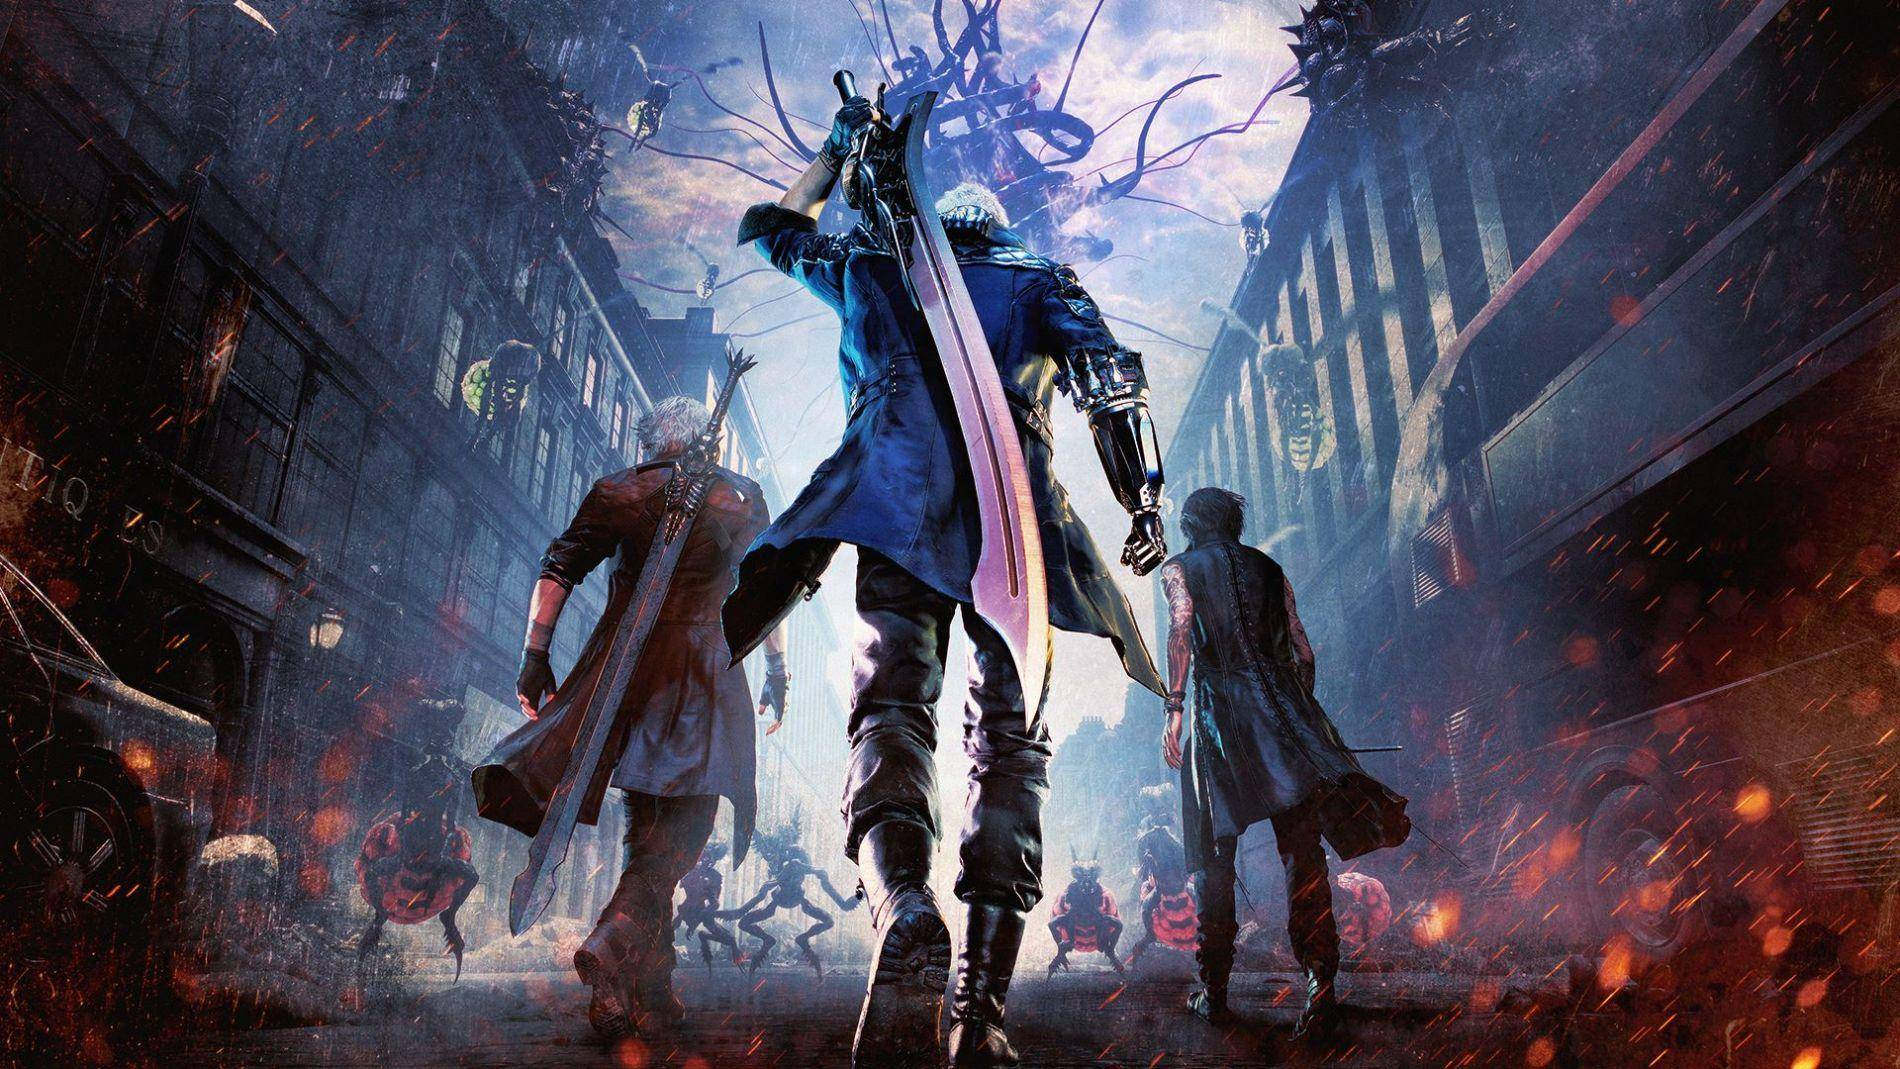 ¡Mira cómo se grabó Devil May Cry 5!